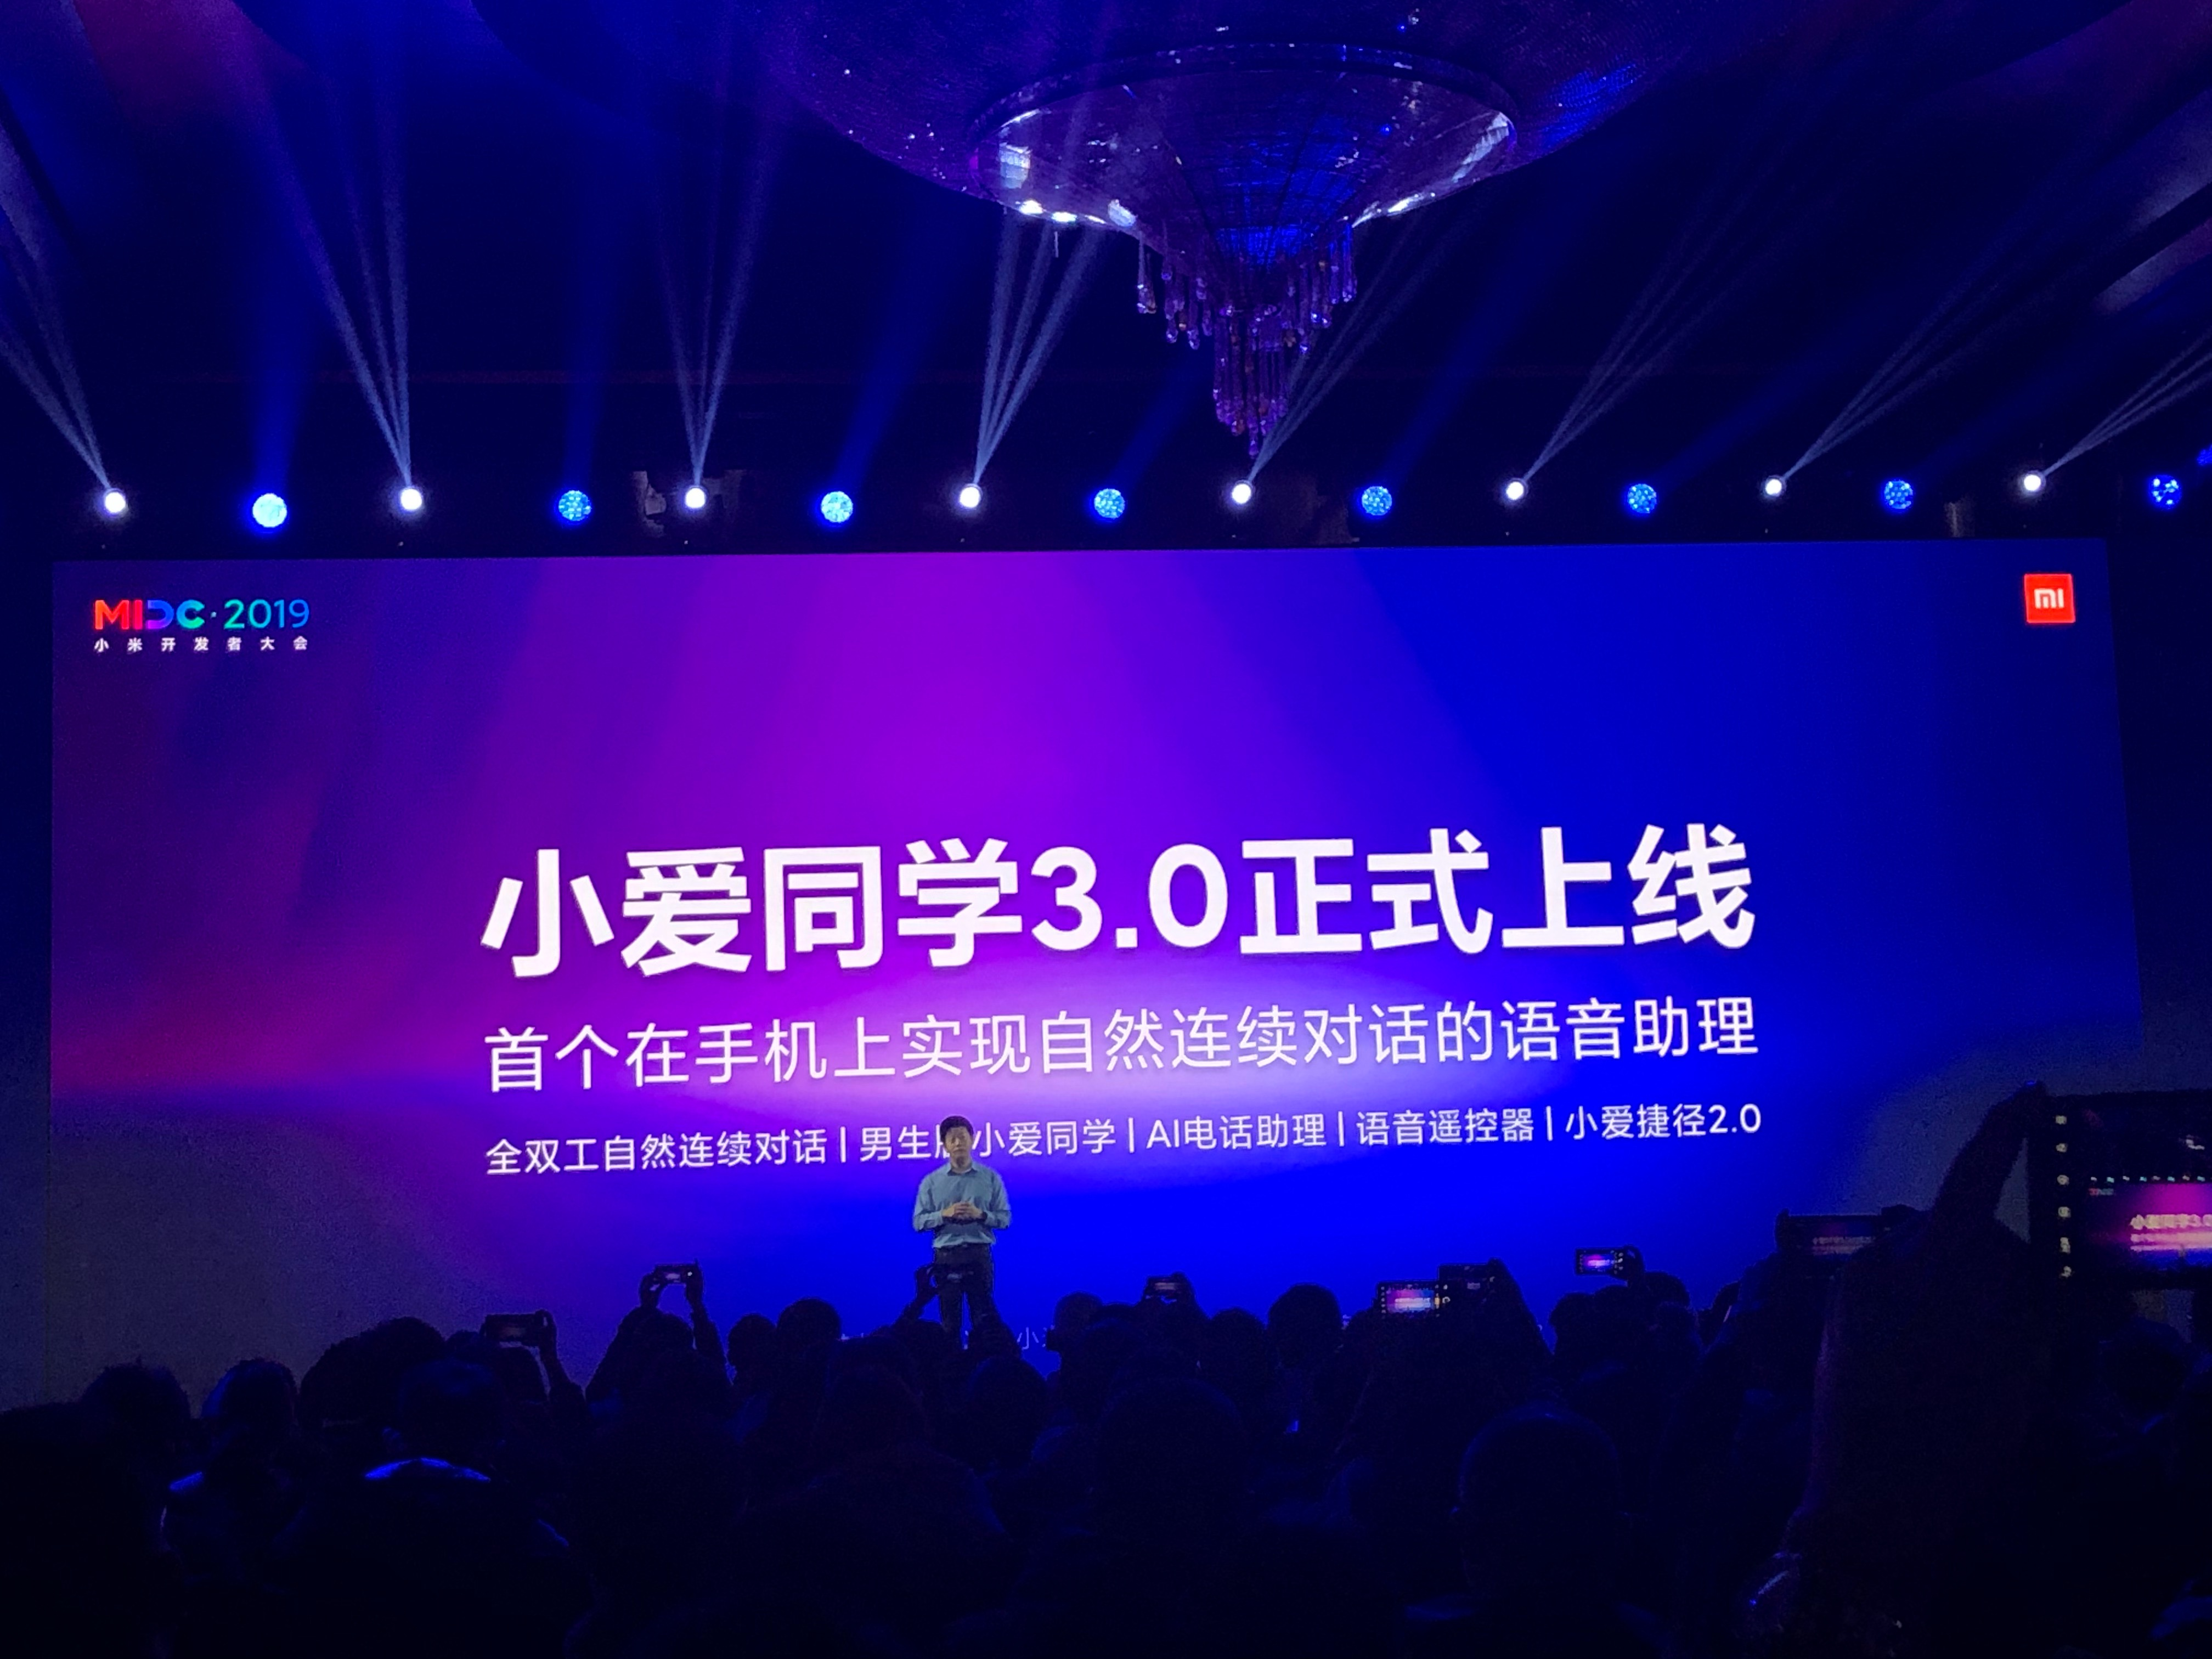 Summary of the Xiaomi Mi Developers Conference.